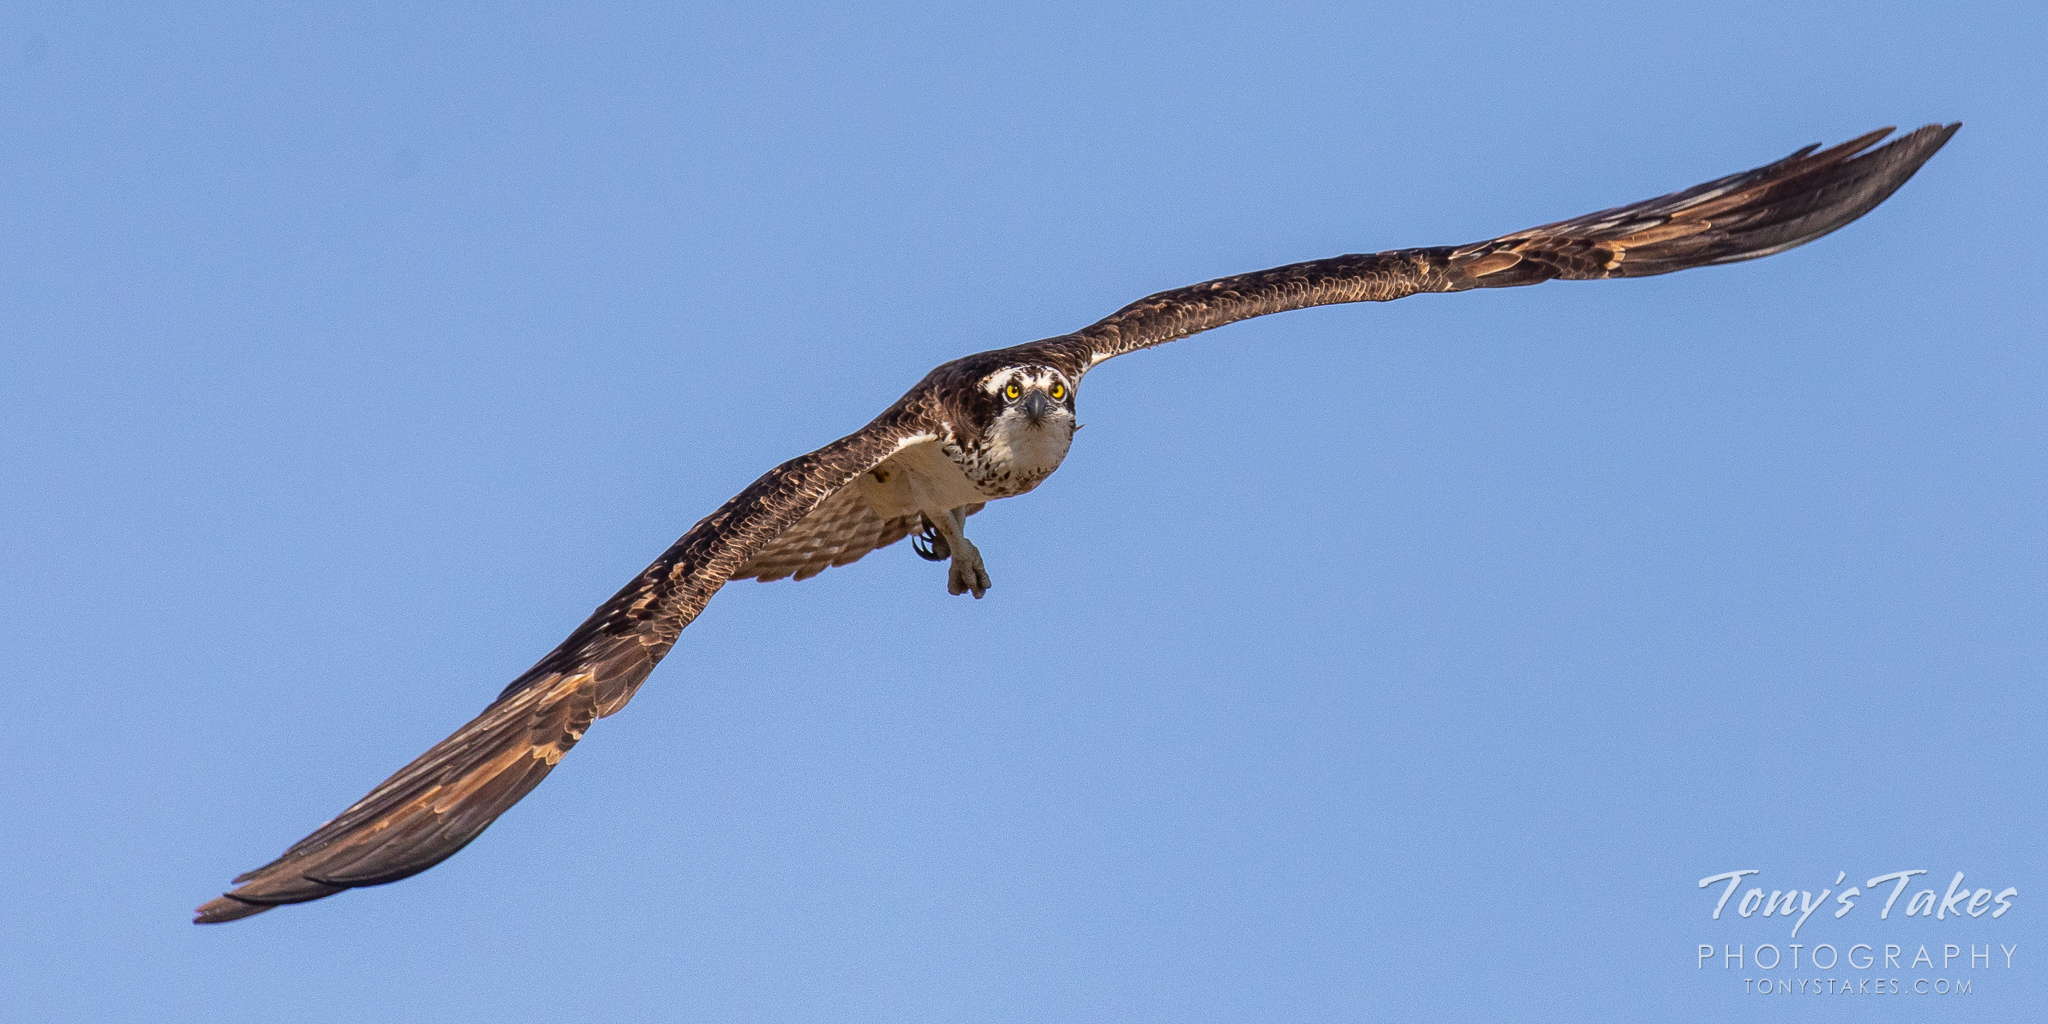 Female osprey focused and flying head on